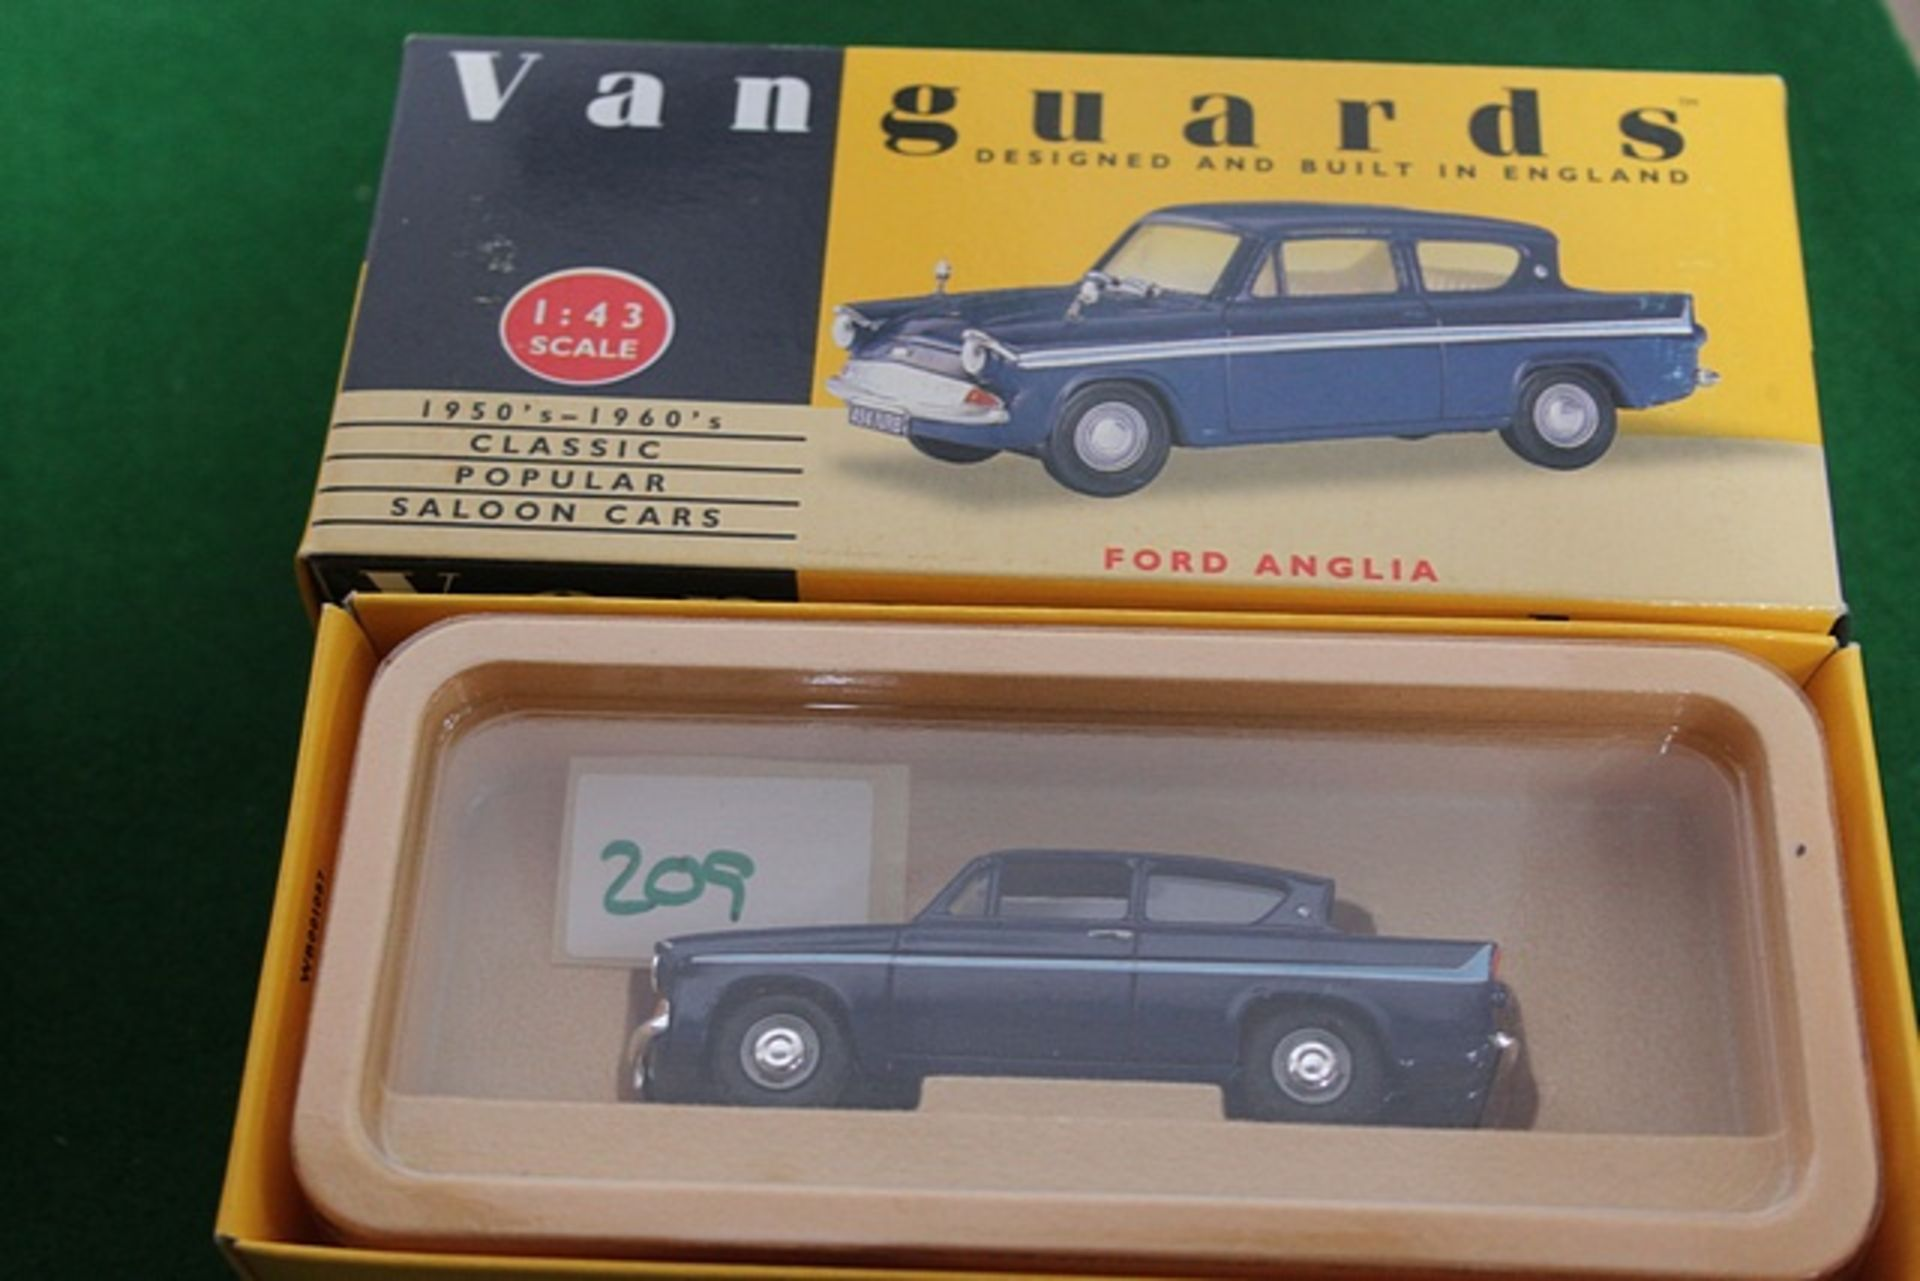 Lot 209 - Vanguards # VA1000 1950s To 1960s Classic Popular Ford Anglia In Navy Cale 1/43 Complete With Box